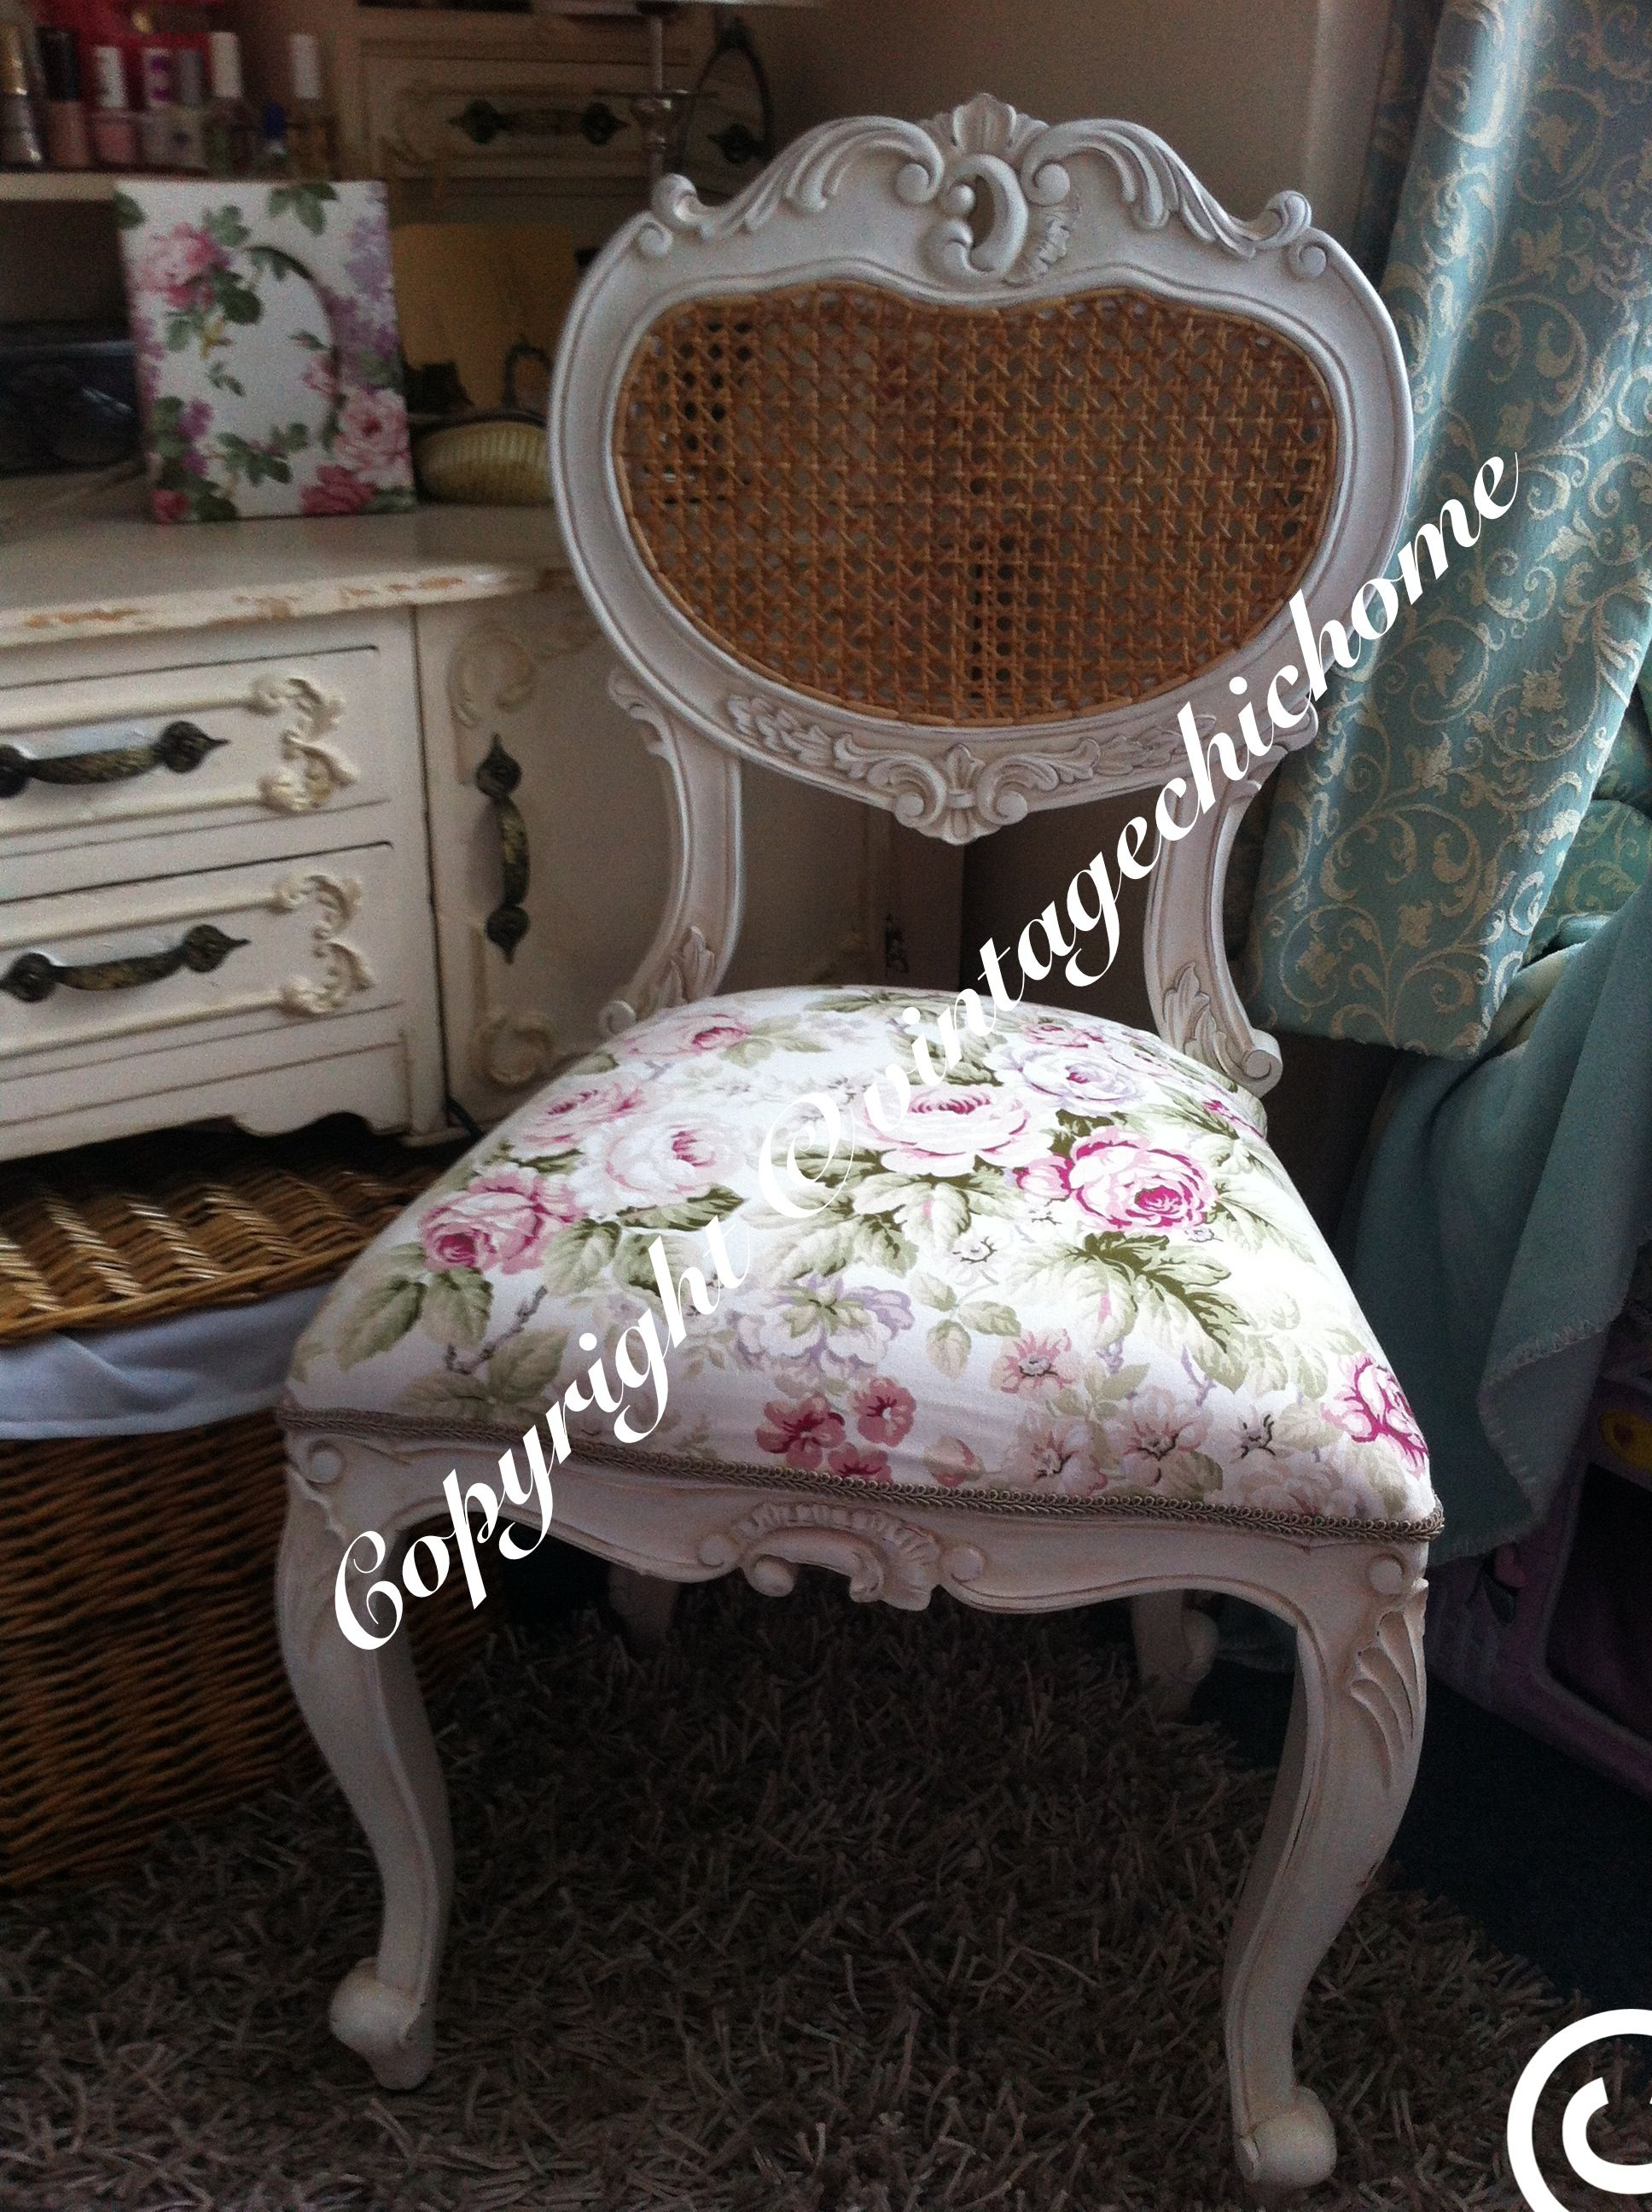 Ornate Shabby Chic Country Bedroom Occasional Chair With Vintage Fl Rose Fabric Www Vintagechichome Co Uk